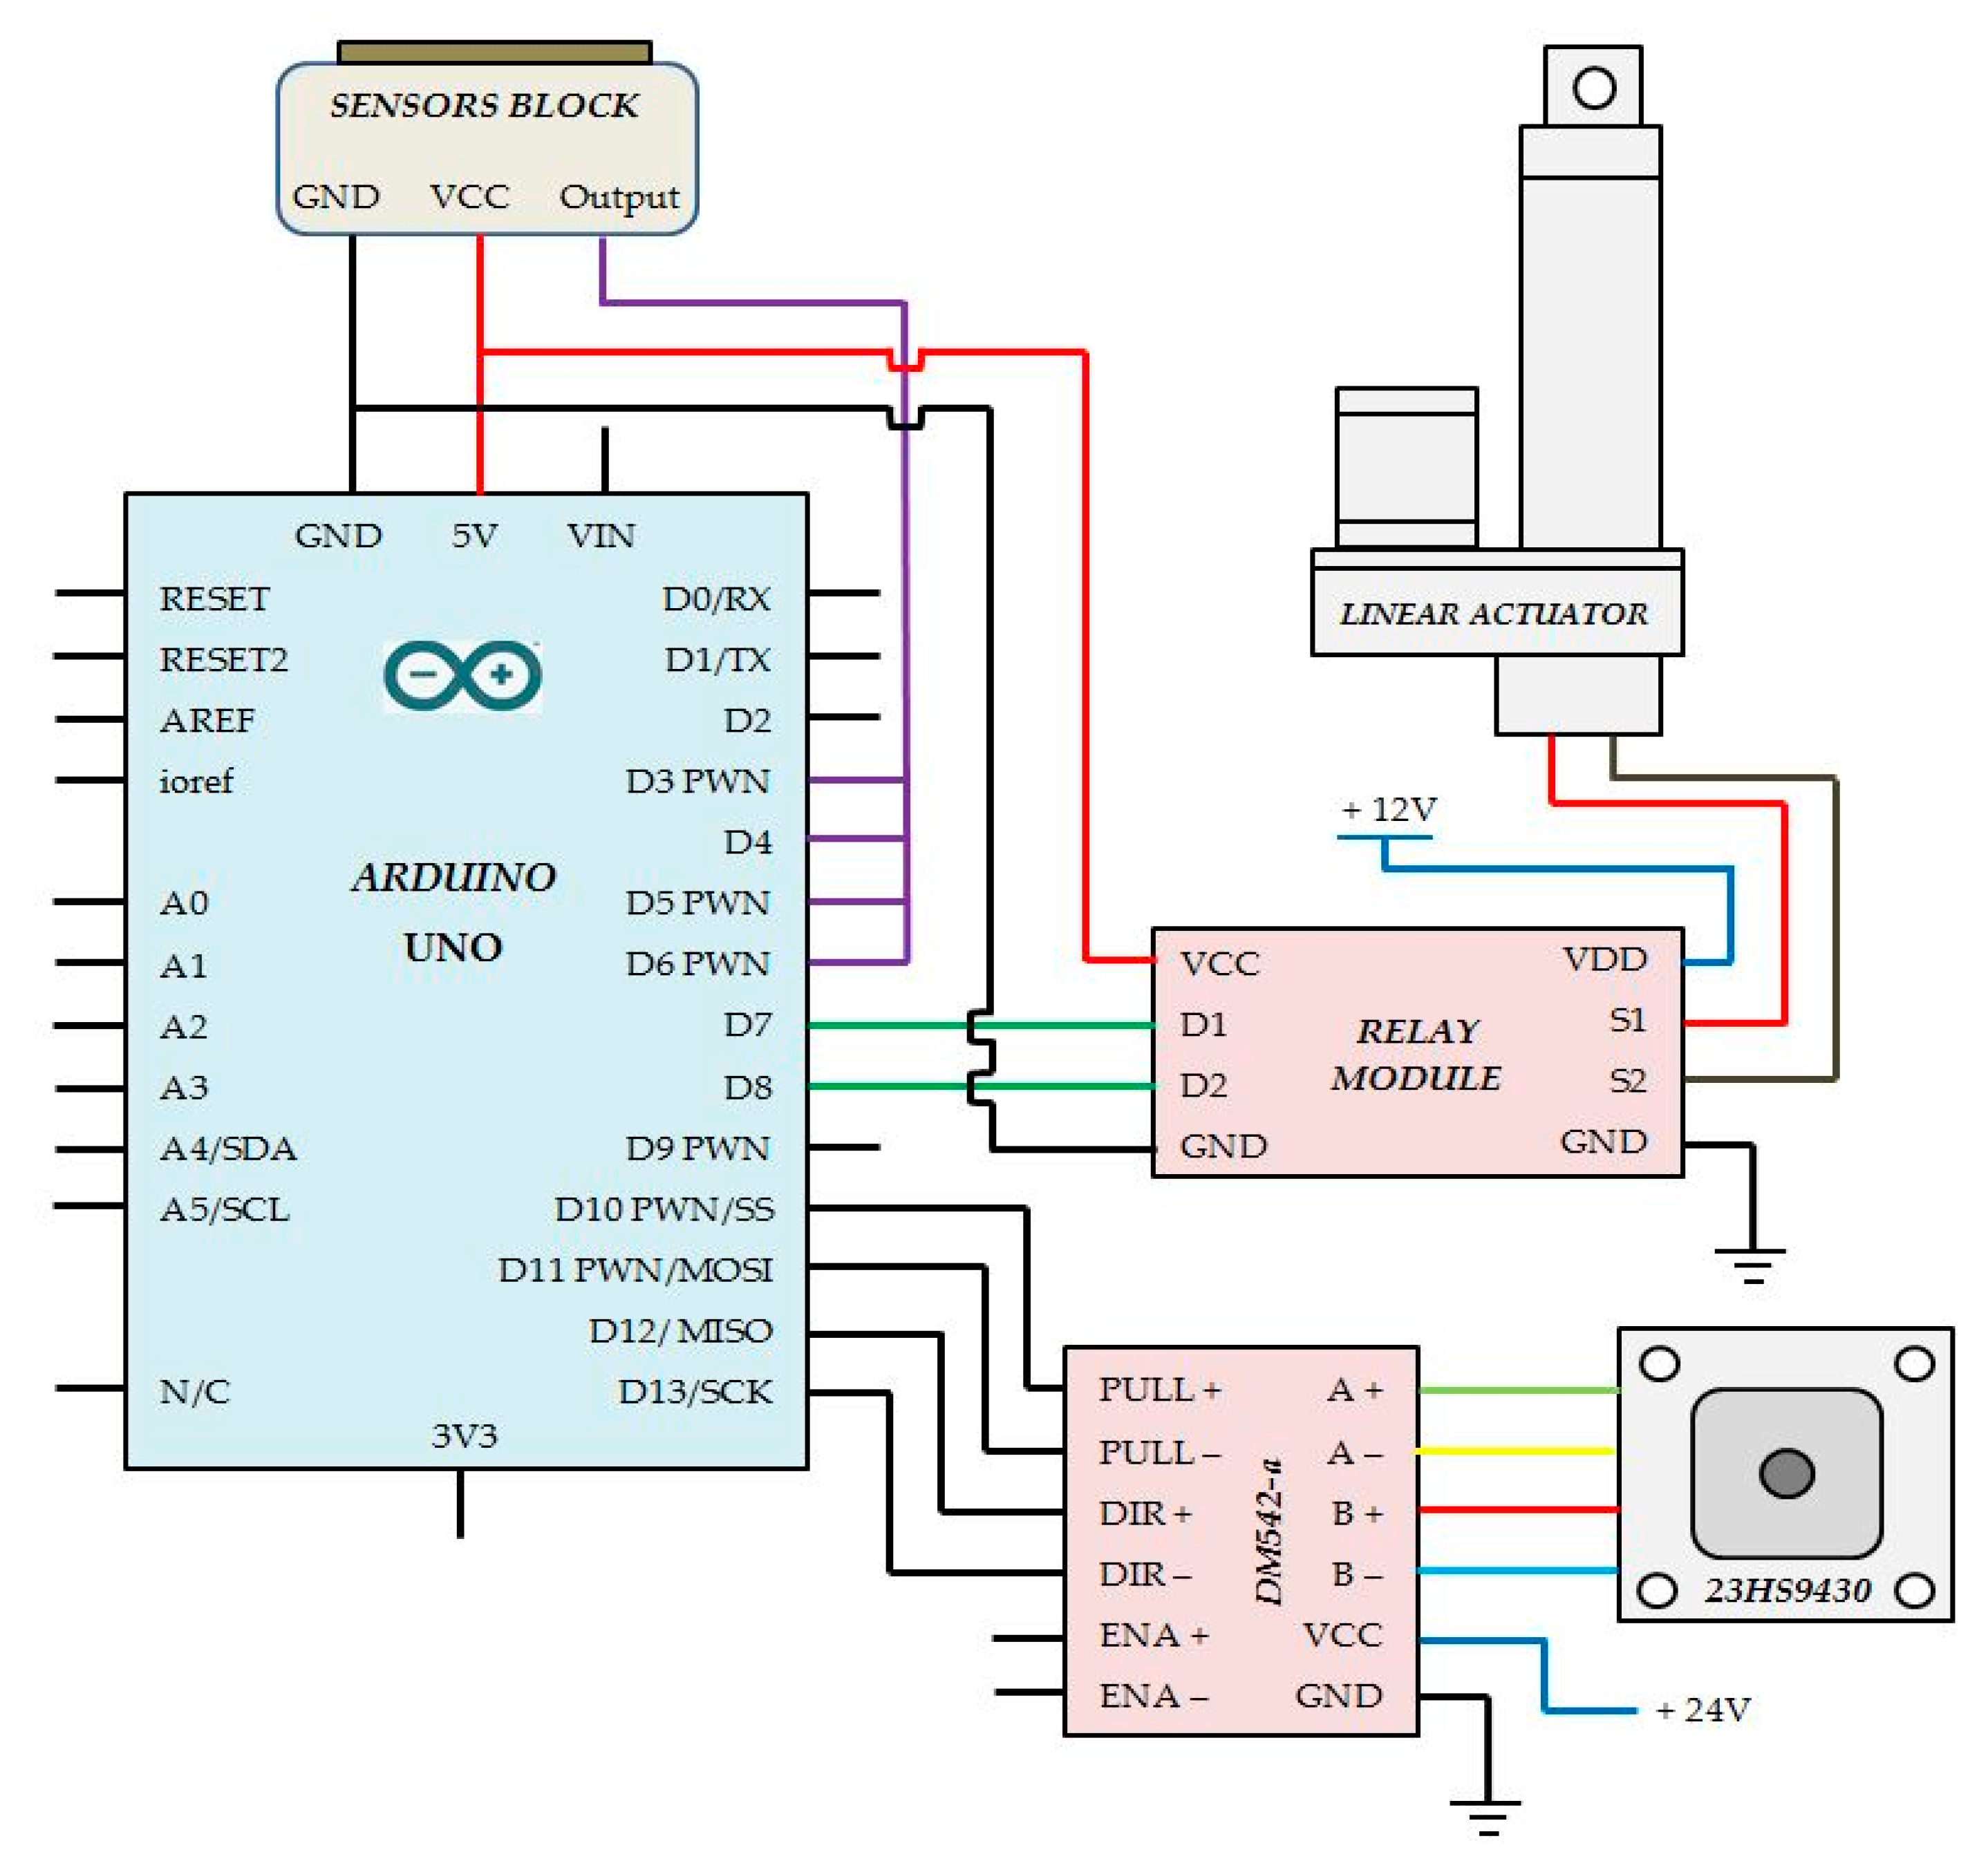 Unique System Circuit Diagram Wiringdiagram Diagramming Diagramm Visuals Visualisation Graphical Check More At Https T Circuit Diagram Circuit Diagram